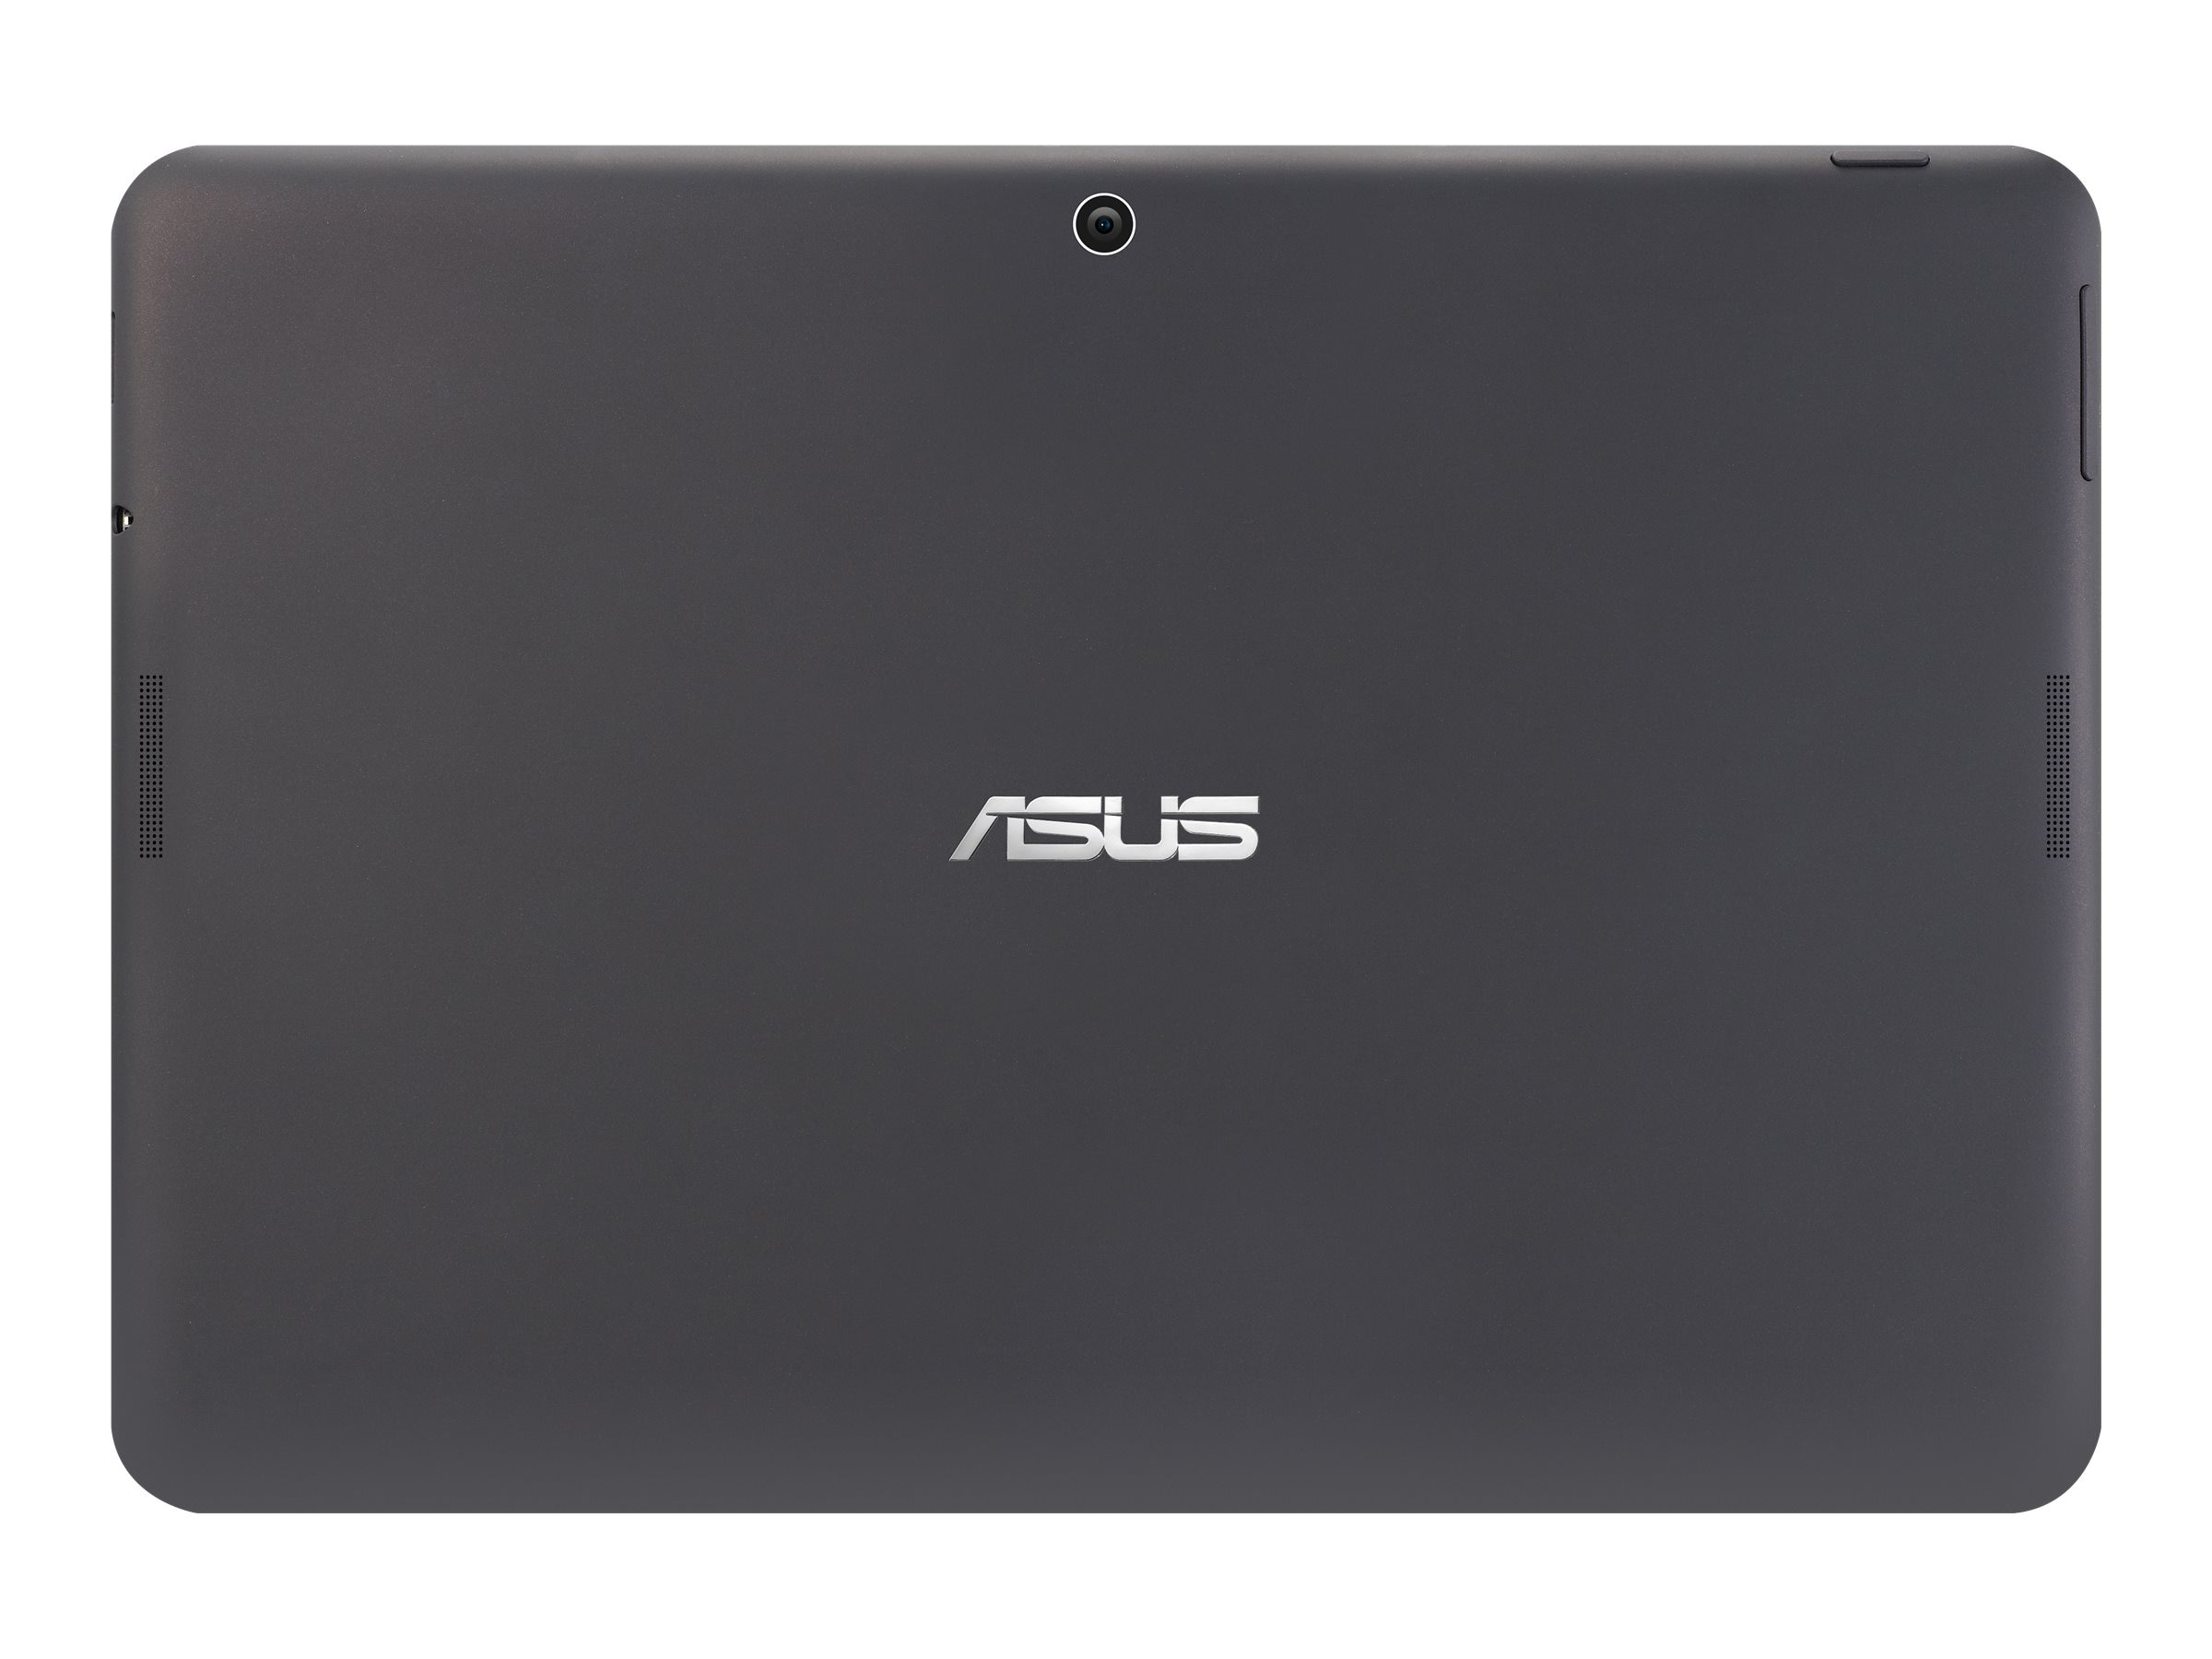 Scratch & Dent Asus Atom QC Z3745 1.33GHz 10 WXGA Touch Black, TF103C-A2-EDU-BK